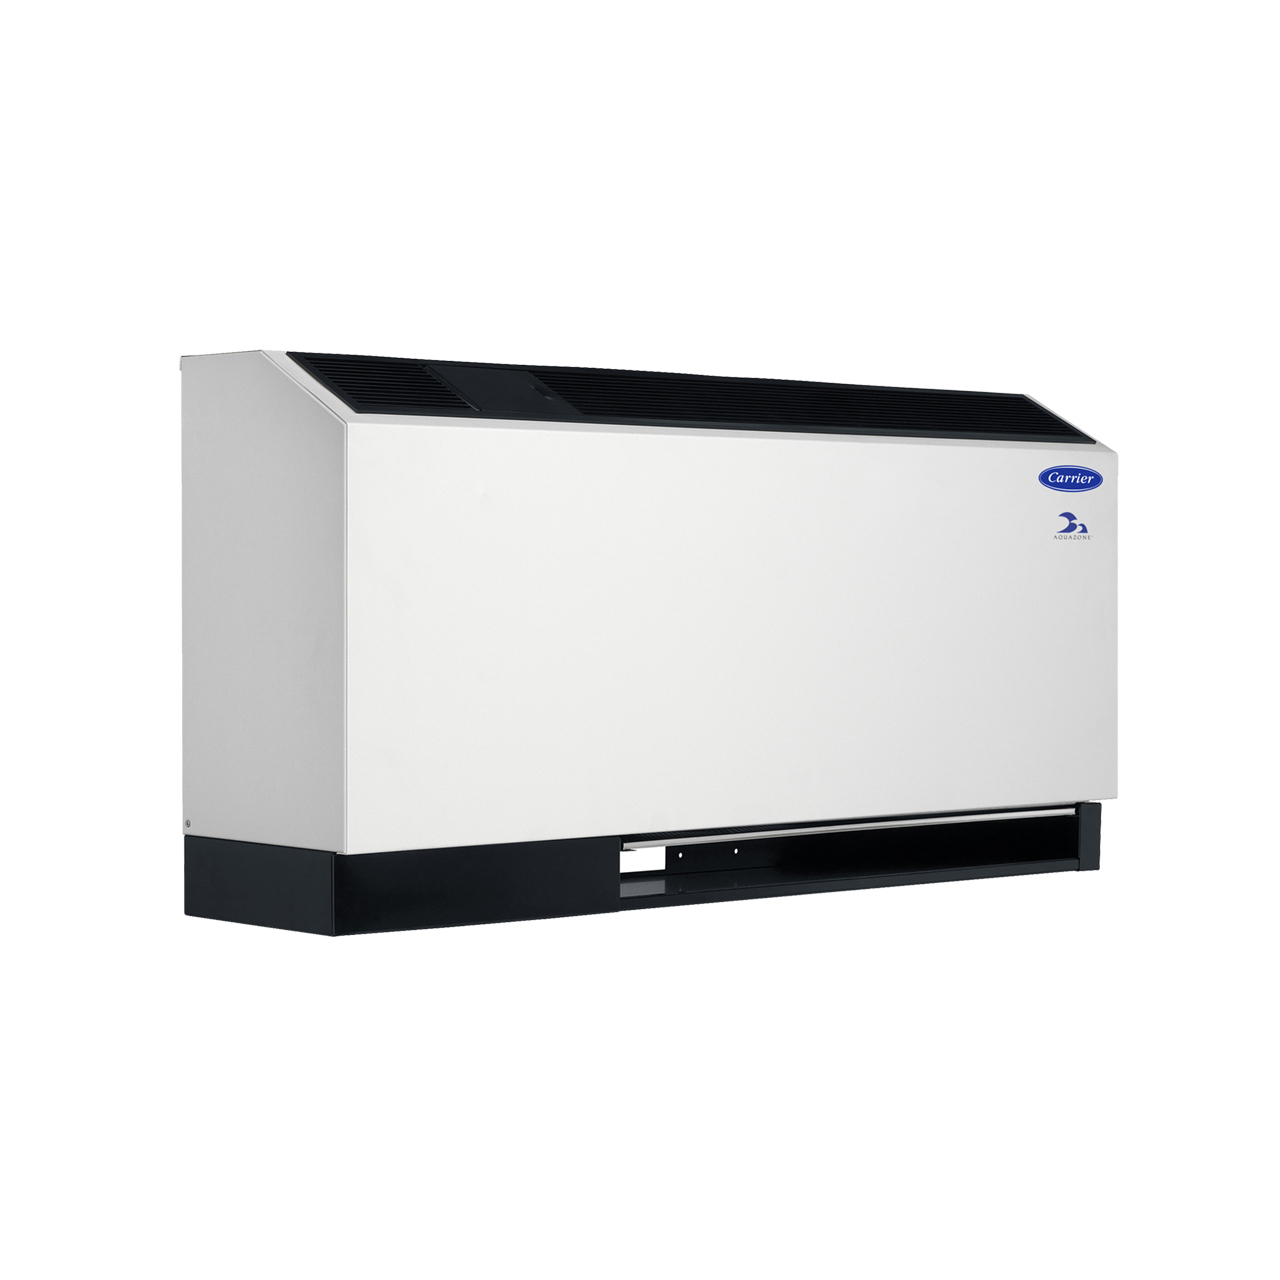 carrier-50pec-water-cooled-console-water-source-heat-pump